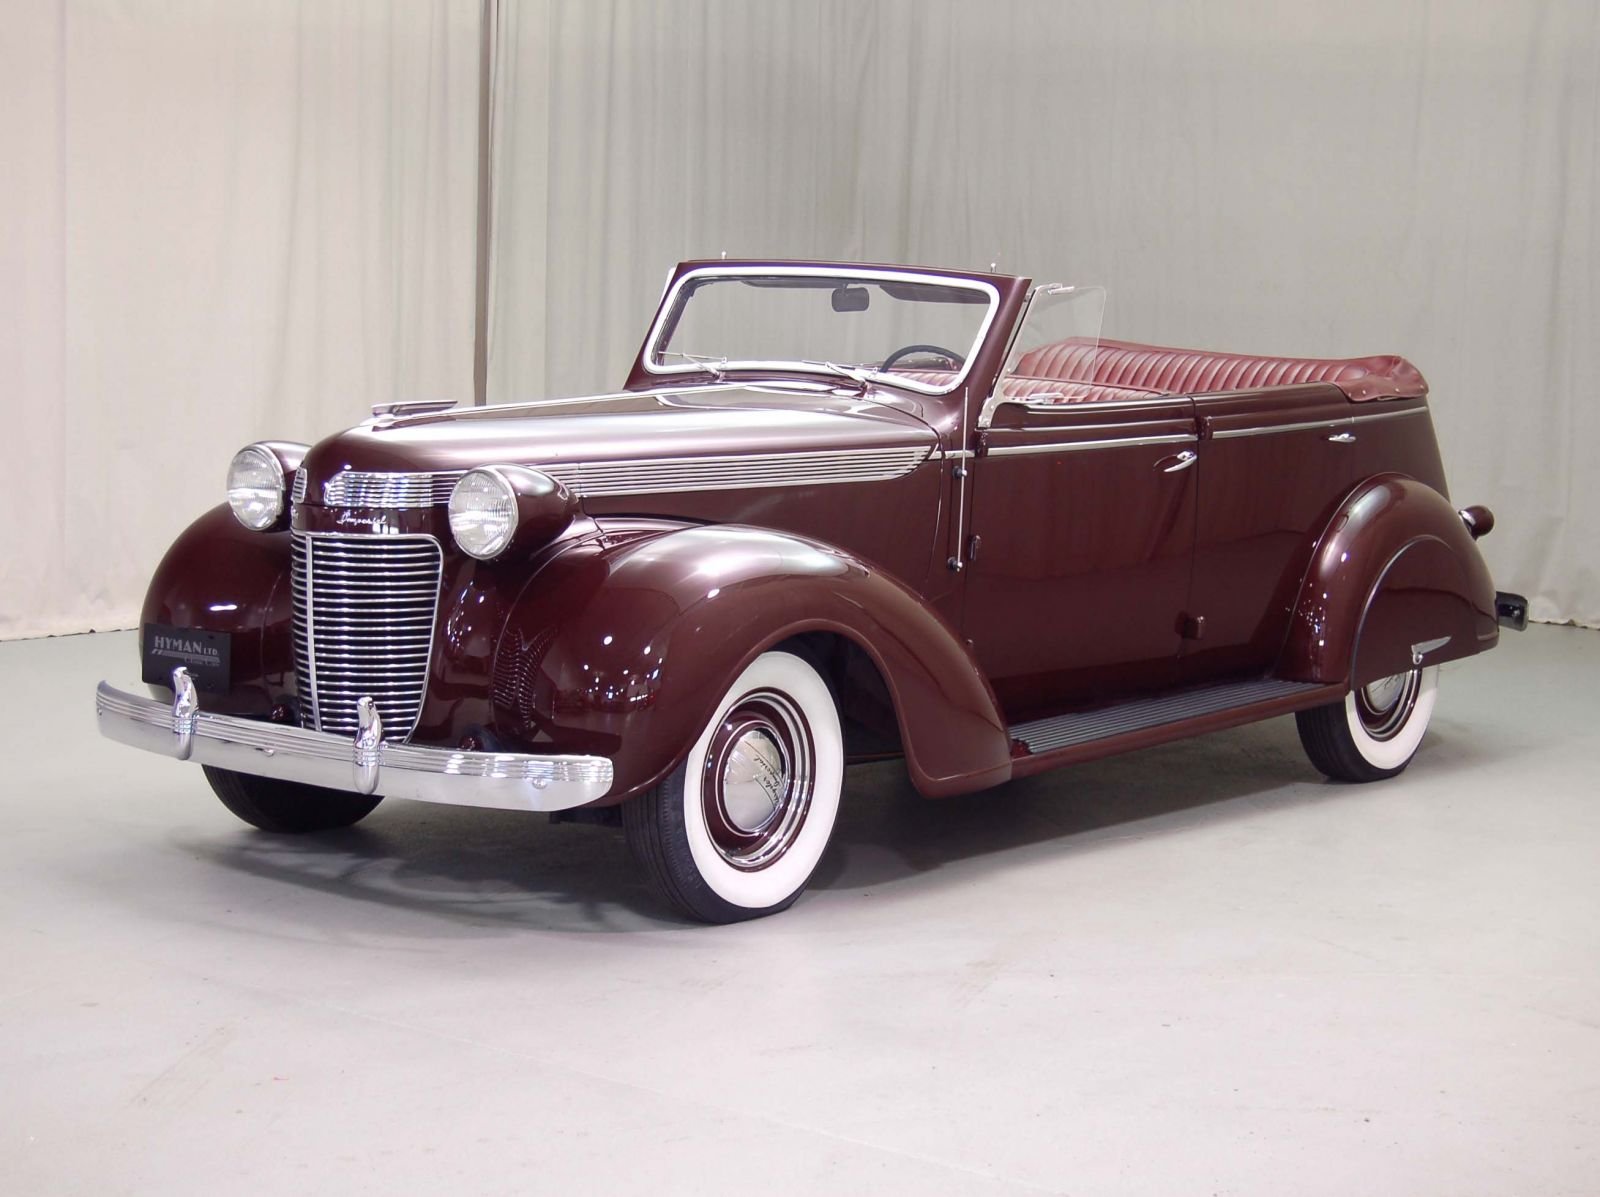 Classic Car / Truck For Sale: 1937 Chrysler Imperial in ...  |1937 Chrysler Imperial